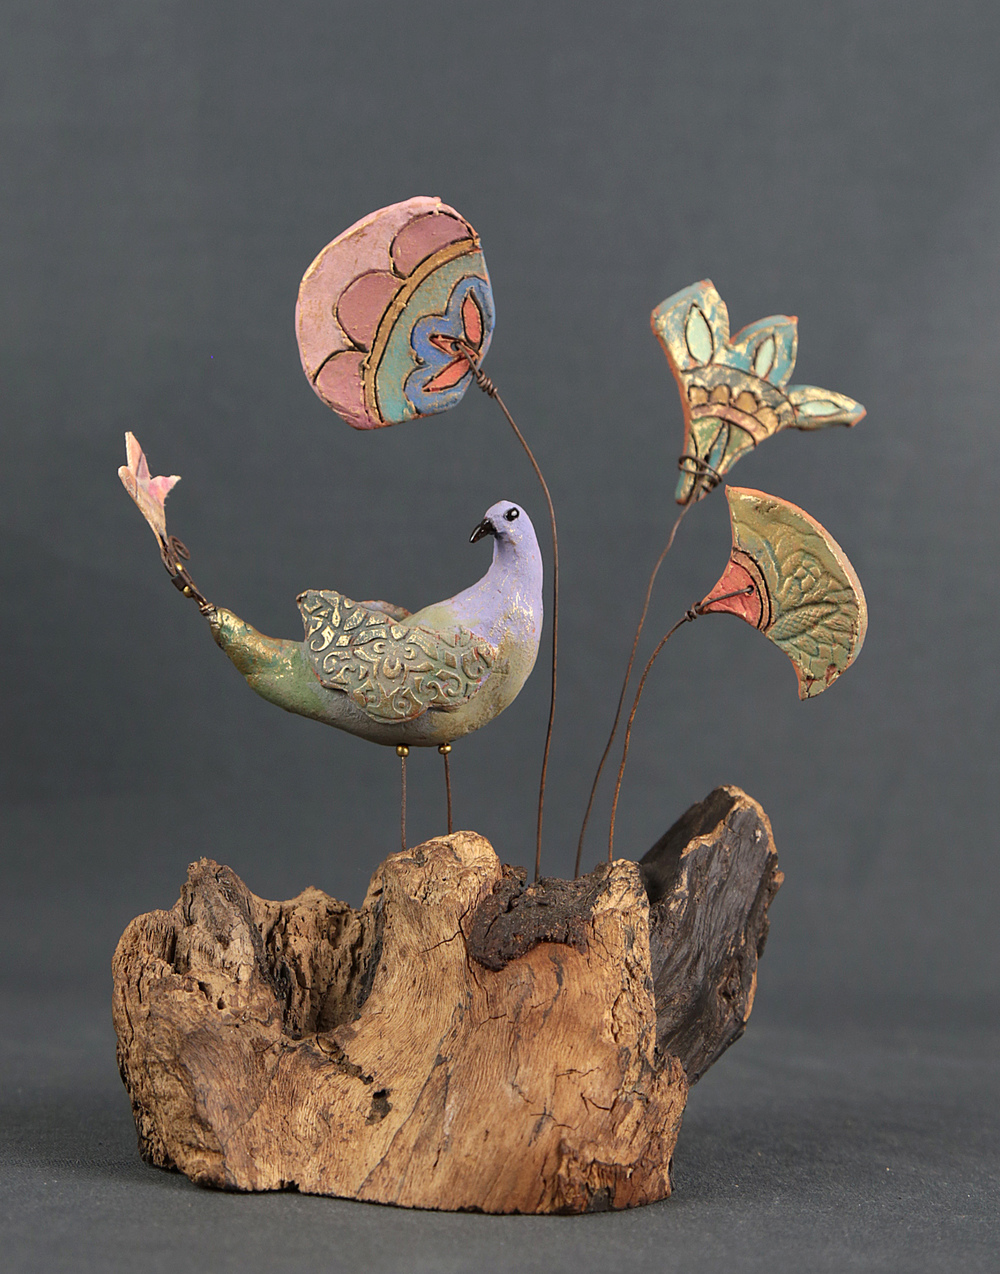 Bansari ceramic & mixed media £135